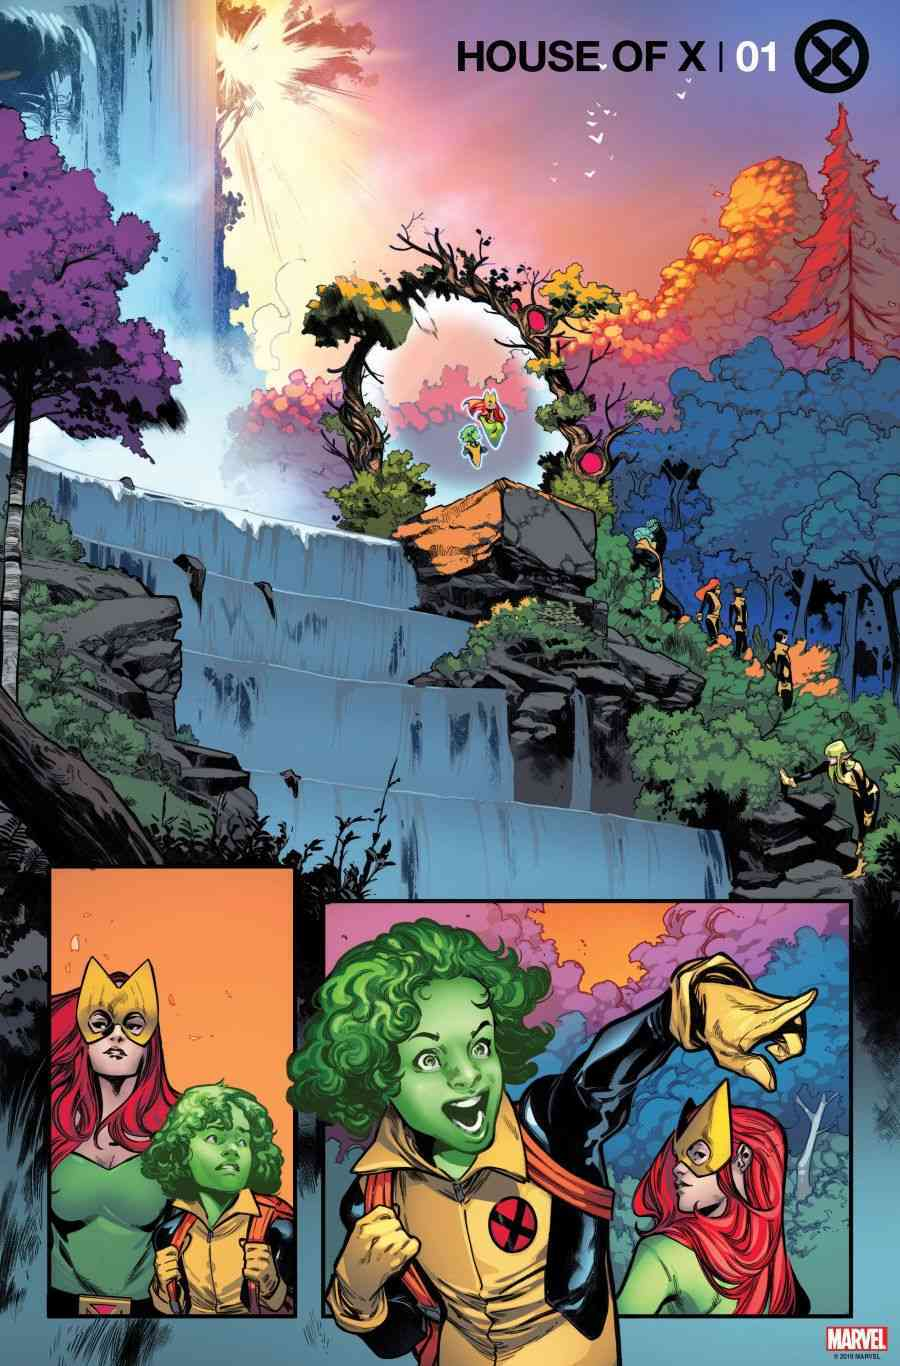 Os X-Men de Jonathan Hickman - House of X #1 - Arte interna 1 - Blog Farofeiros